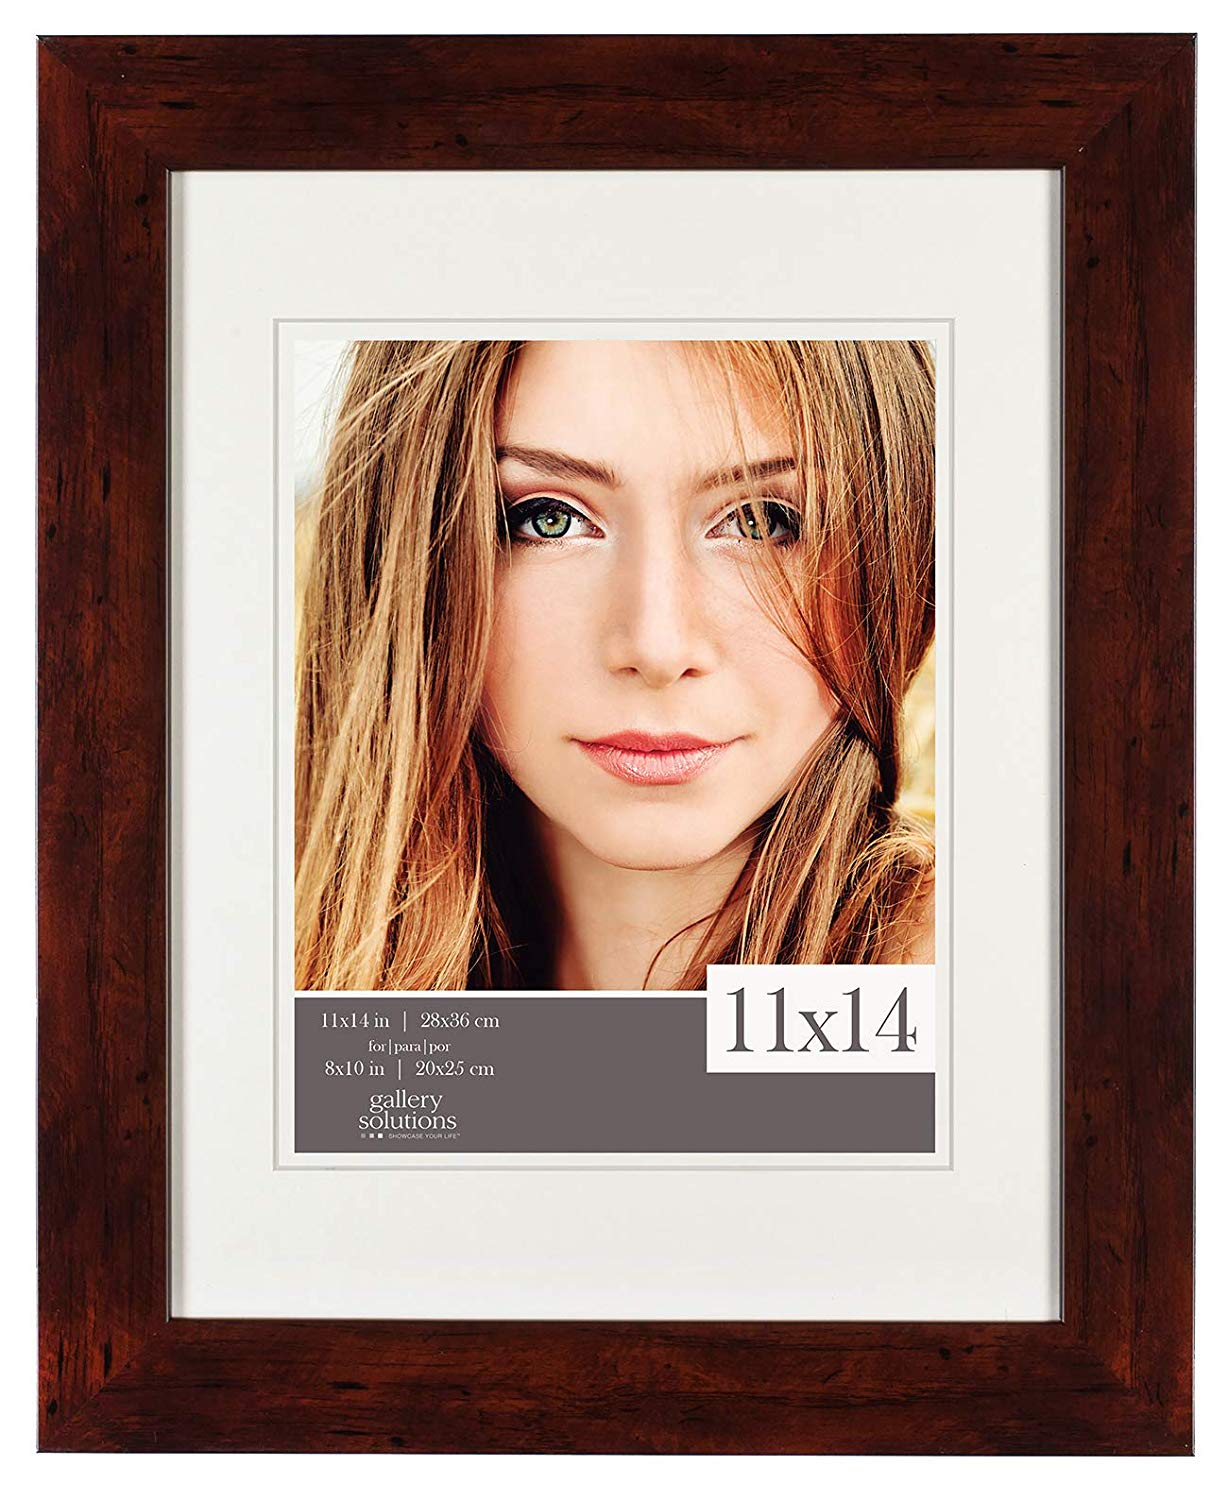 Cheap Double Frame 8x10 Find Double Frame 8x10 Deals On Line At